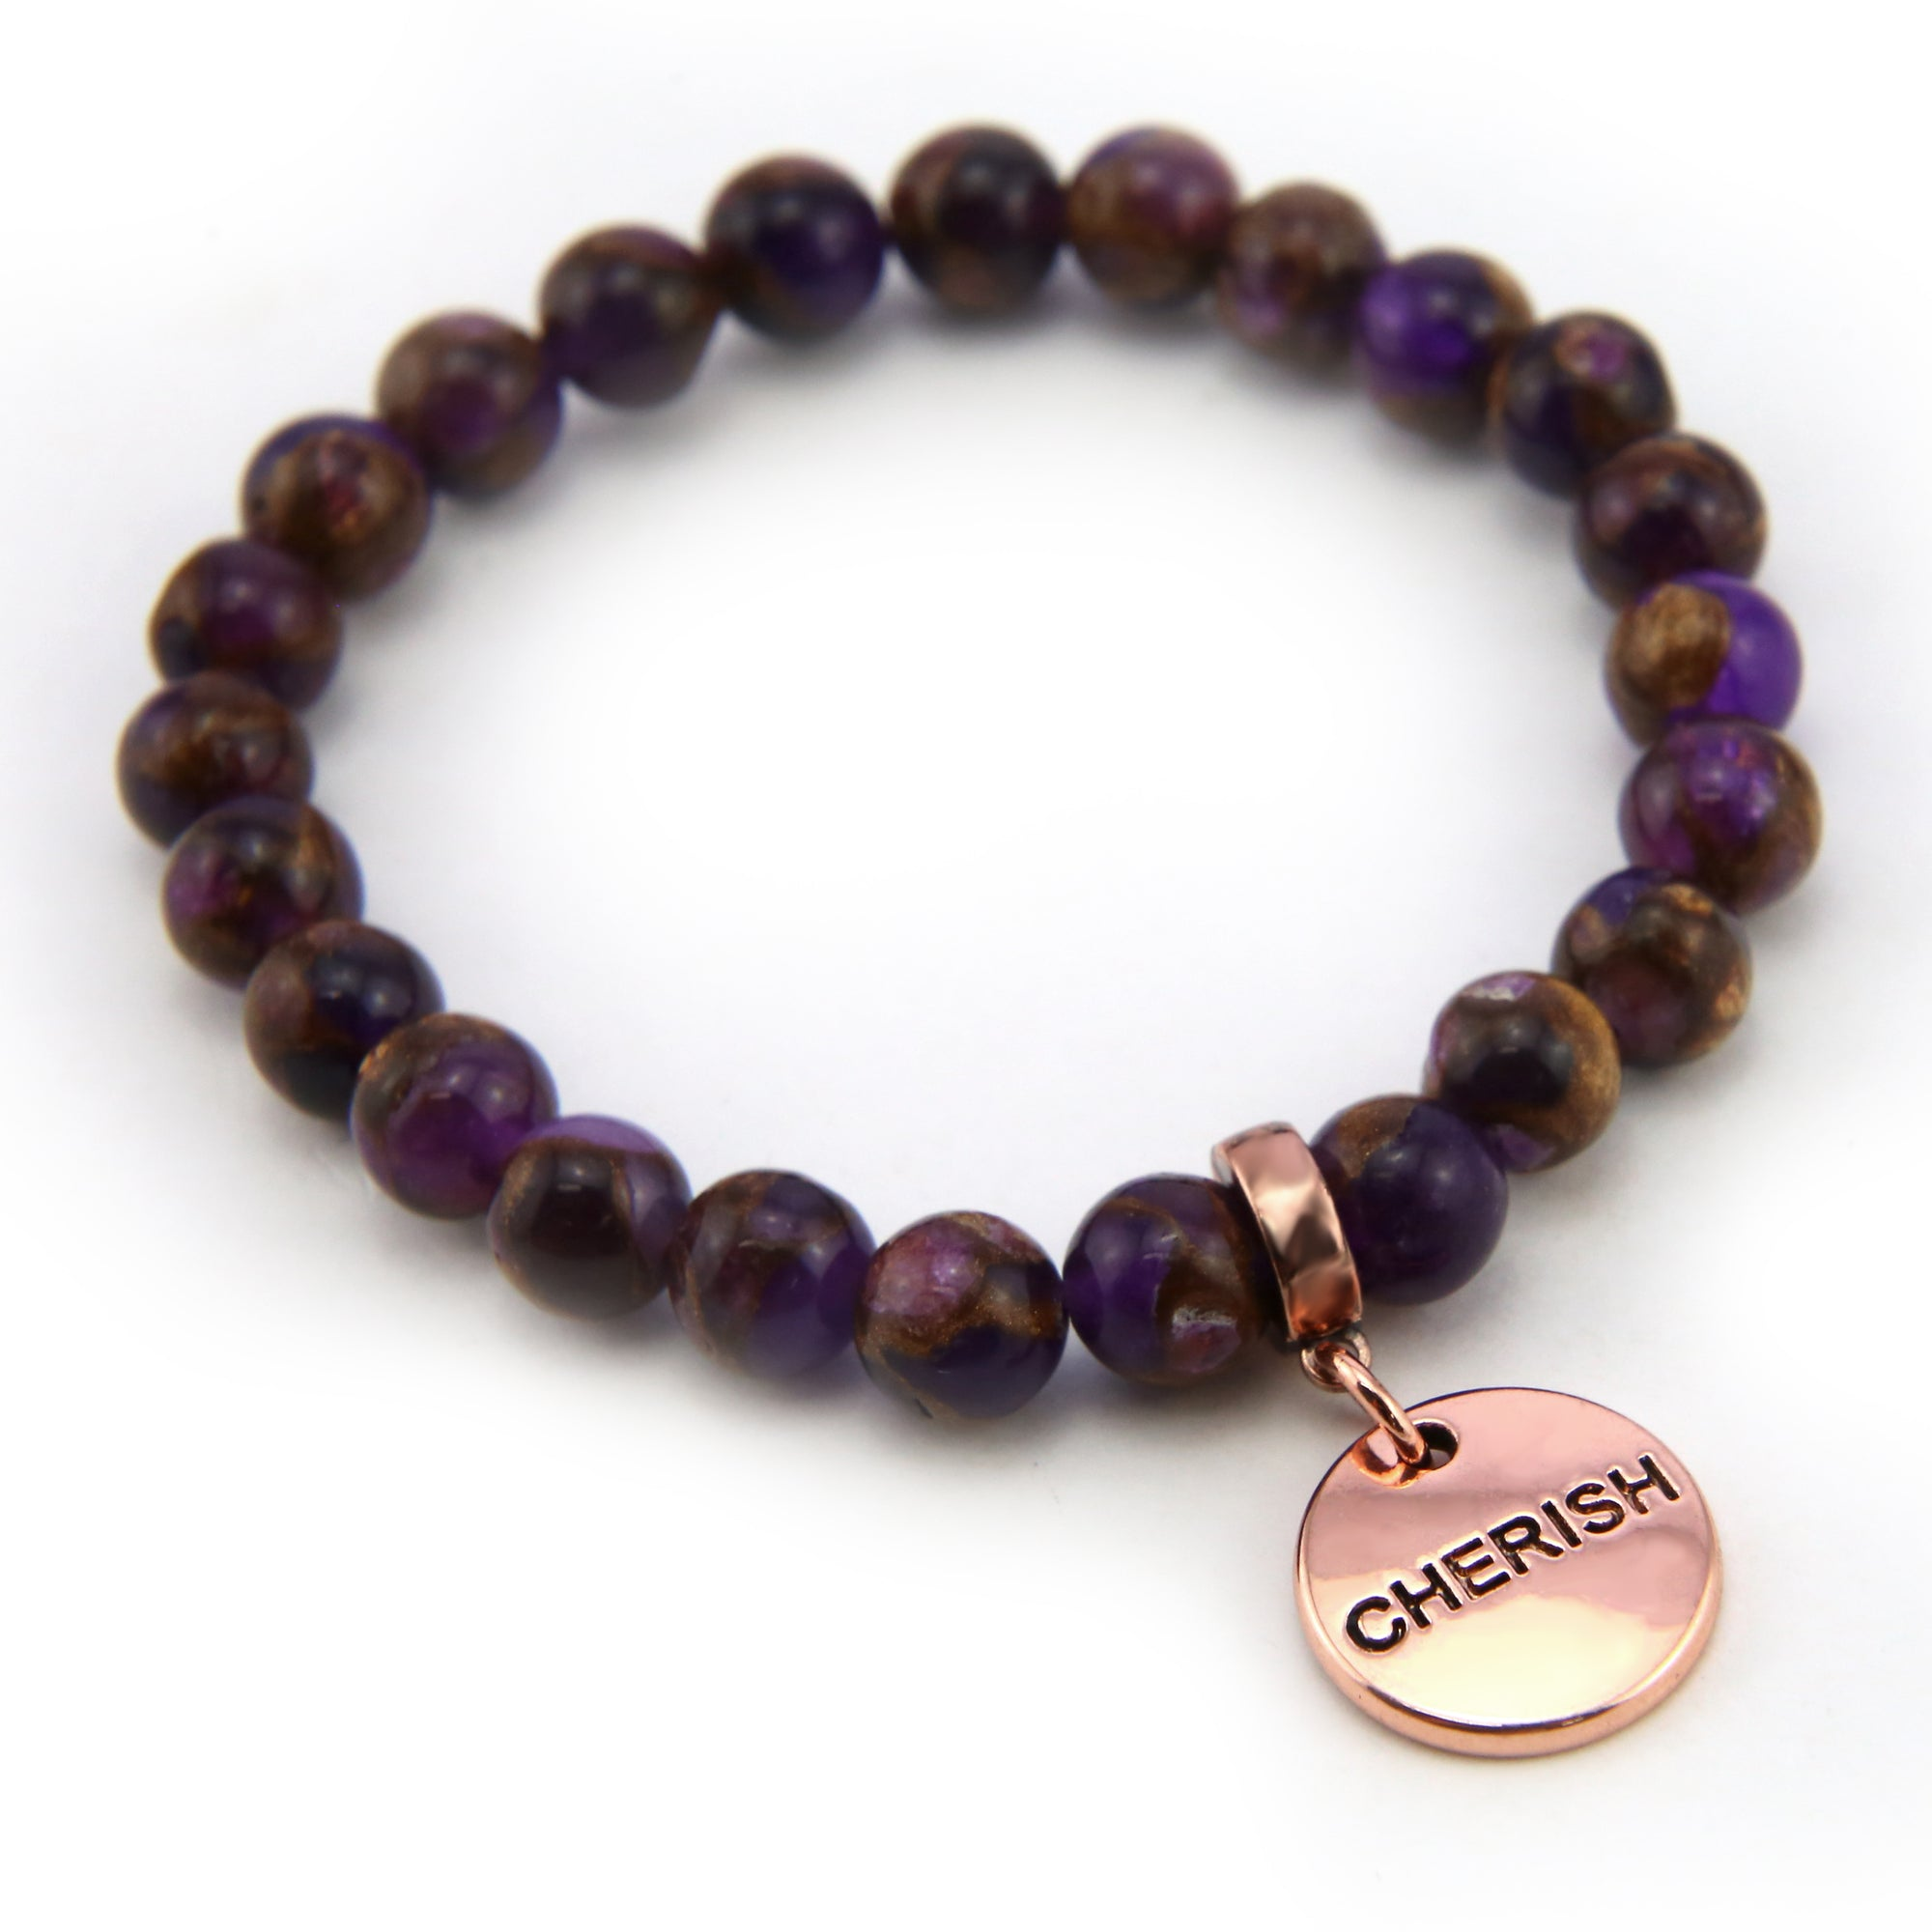 Stone Bracelet -  Purple Lux Nepal Stone 8mm Beads - with Rose Gold Word Charm (4008)